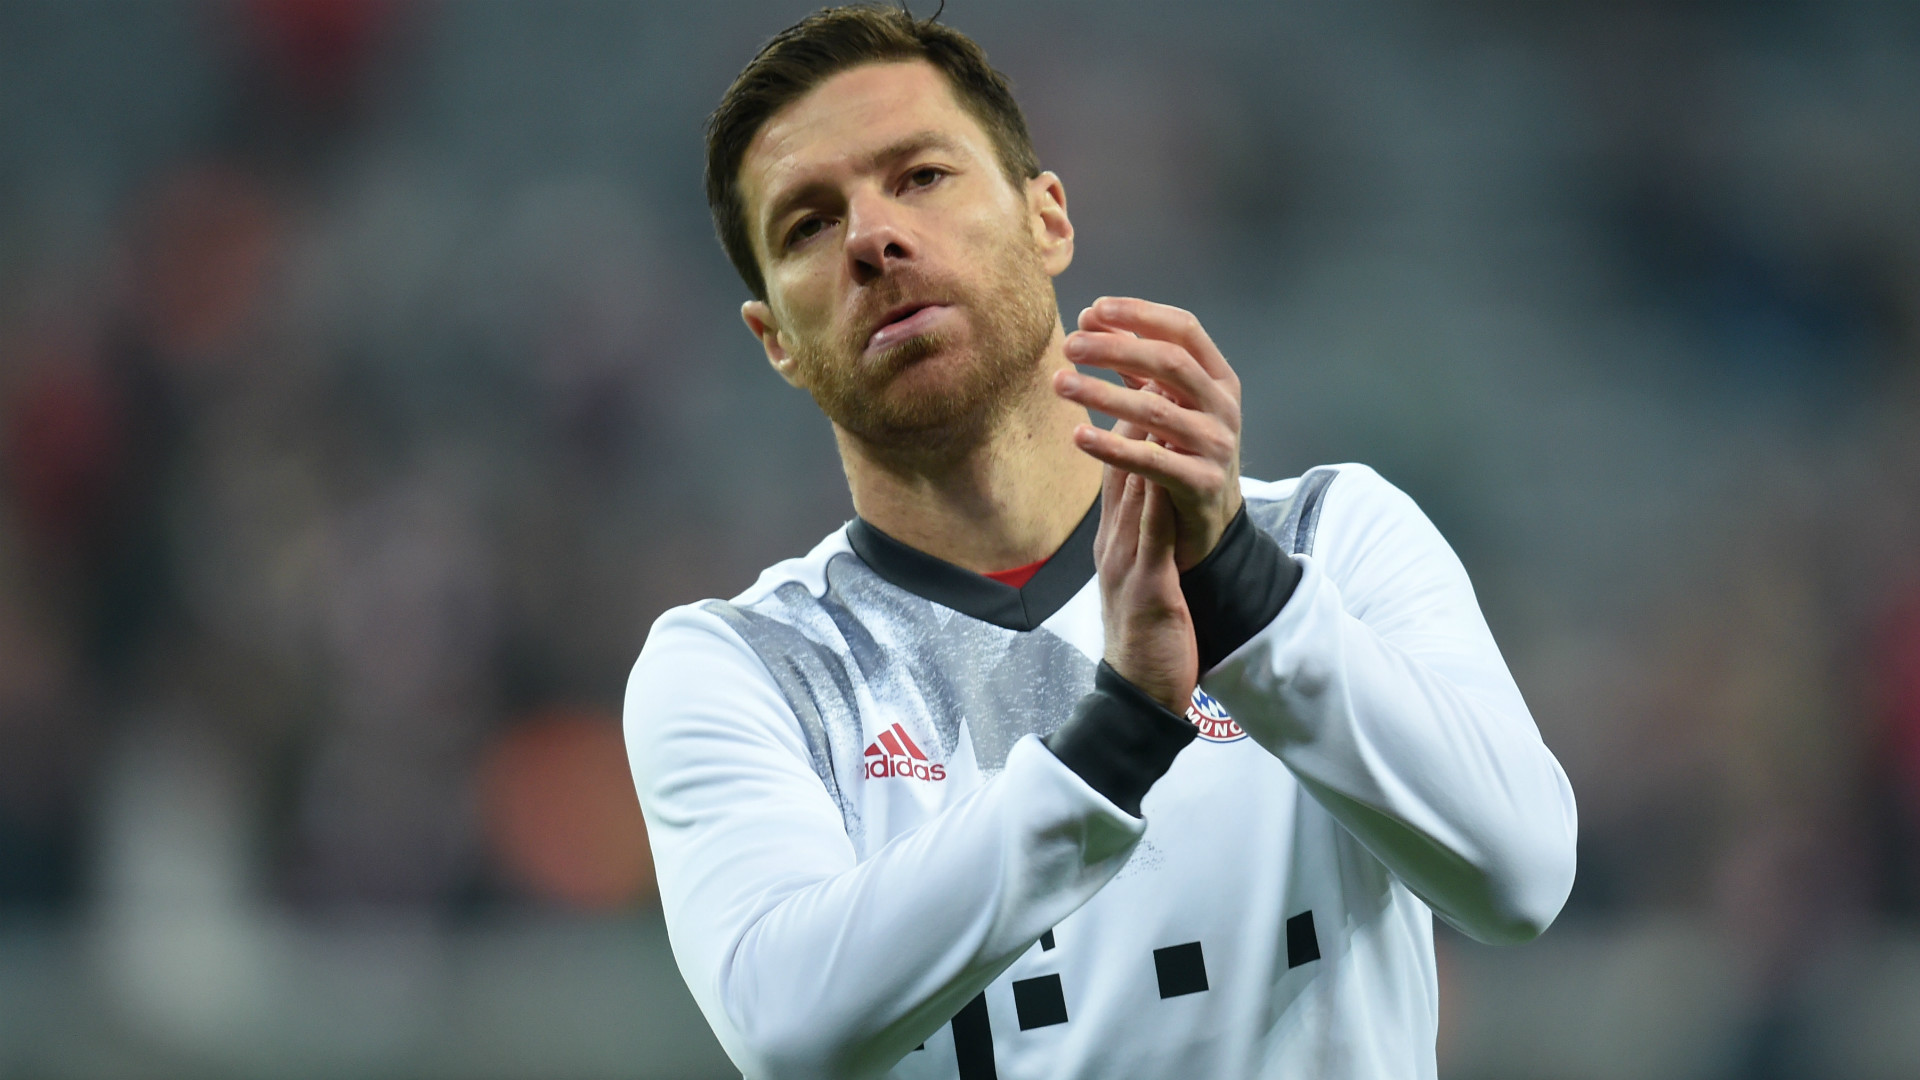 xabi alonso fc bayern 07022017 1kwt8qp6zi0hl1ojotonrp62sc - Xabi Alonso to Retire From Football at The End Of Season